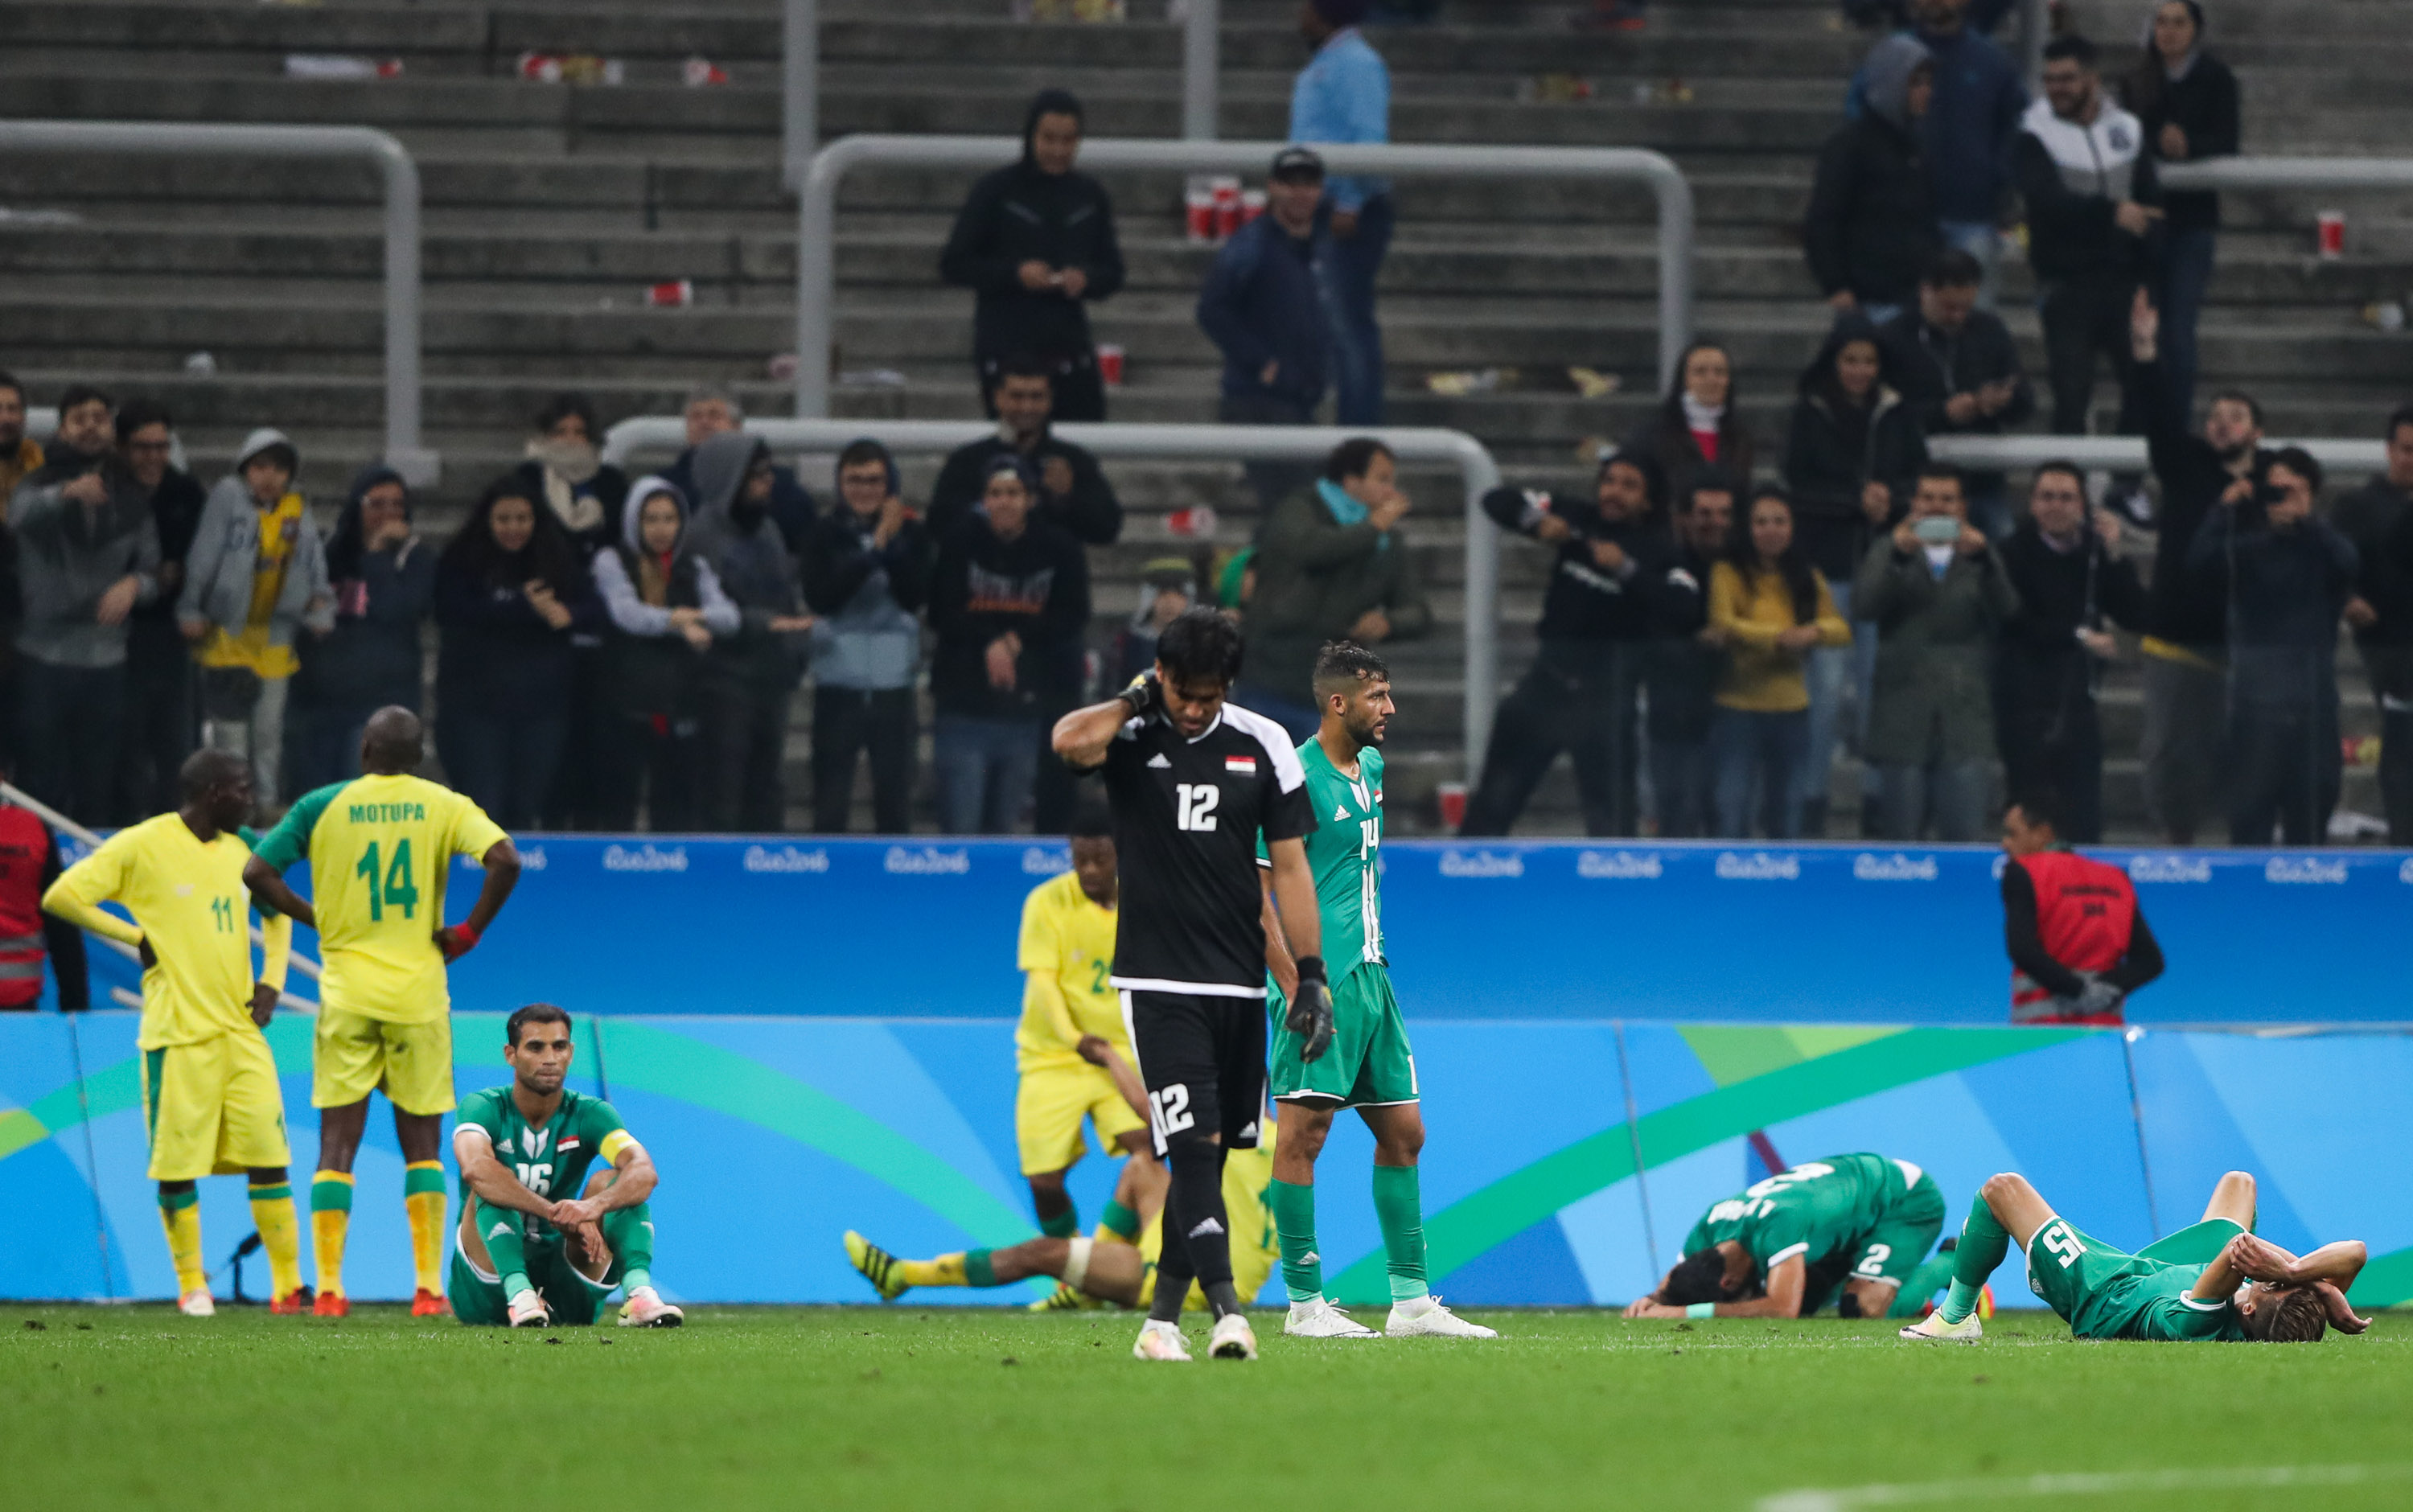 Iraq eliminated from Olympics as Rio 2016 dream comes to an end